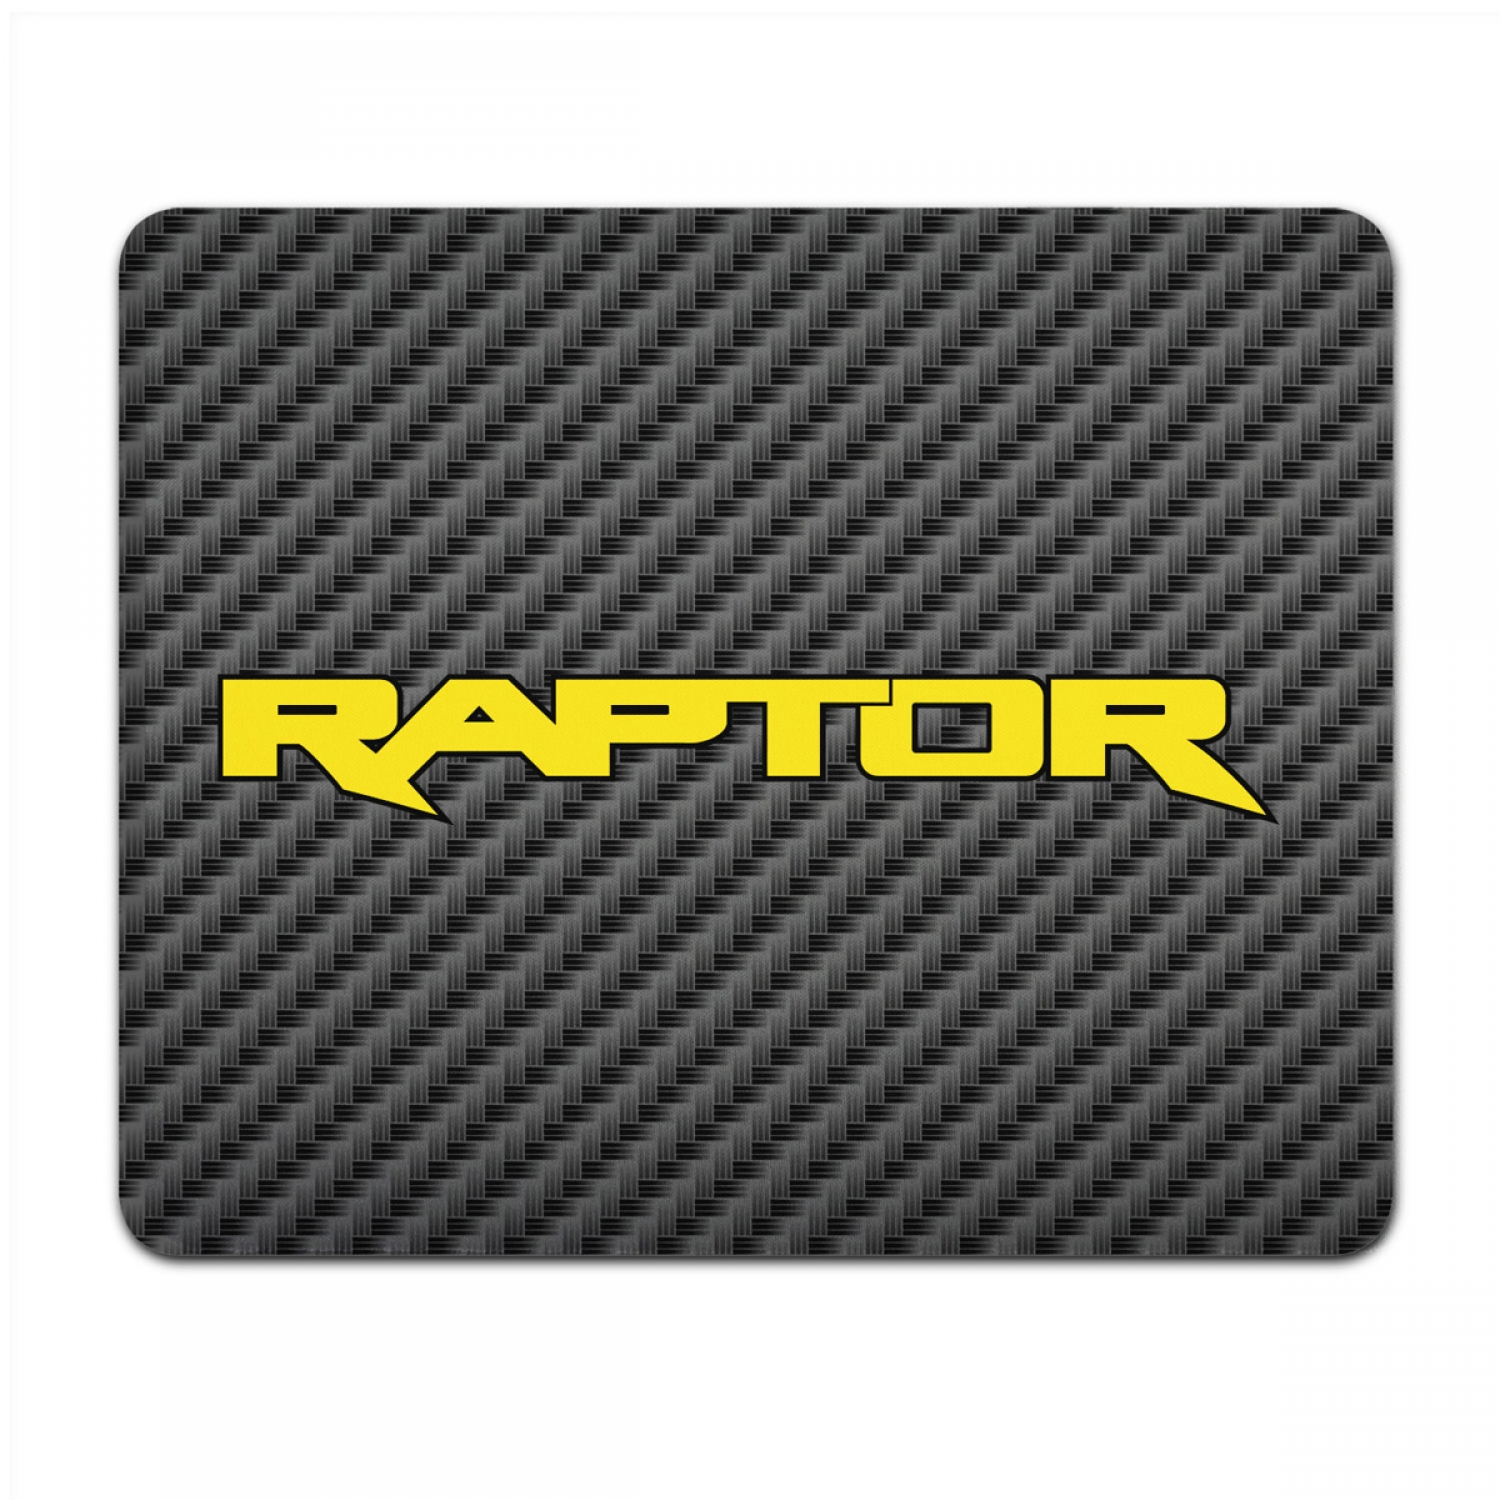 Ford F-150 Raptor 2017 Yellow Black Carbon Fiber Texture Graphic PC Mouse Pad